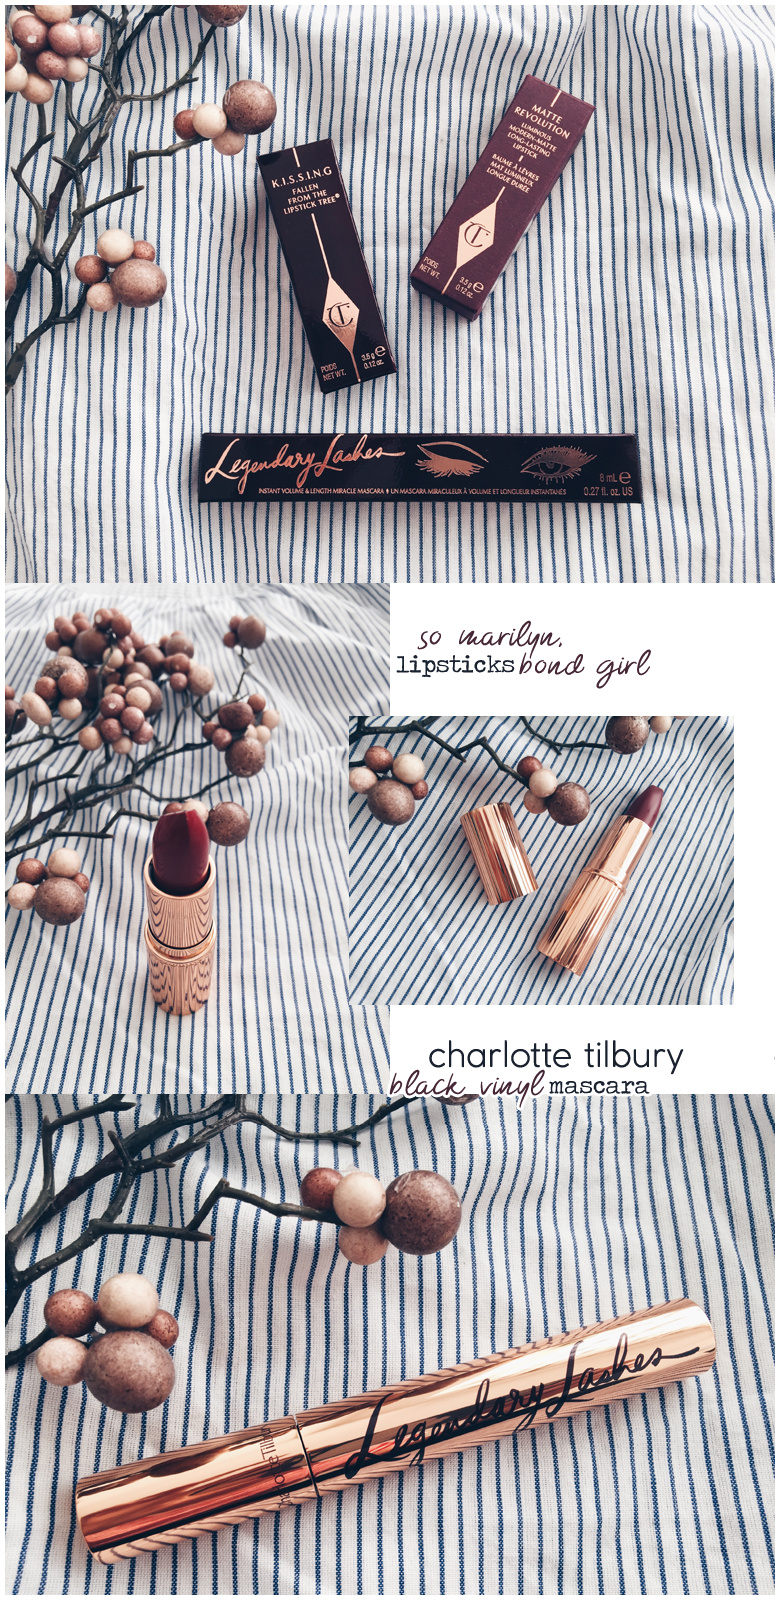 charlotte tilbury beauty products, legendary lashes mascara, so marilyn and bond girl lipsticks, review